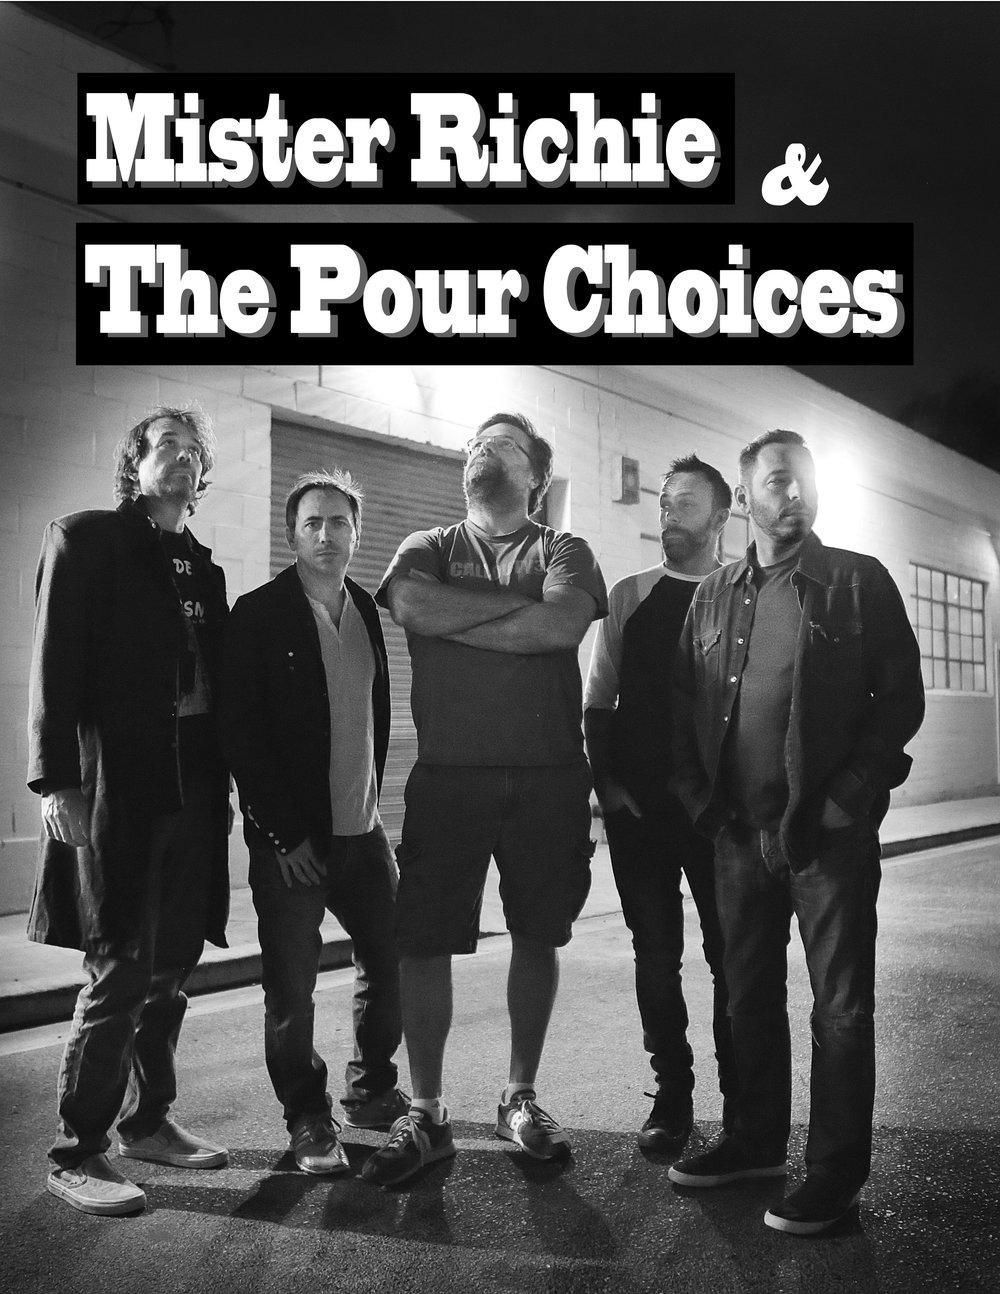 Mister Richie & ThE pOUR CHoices - Rock And Roll